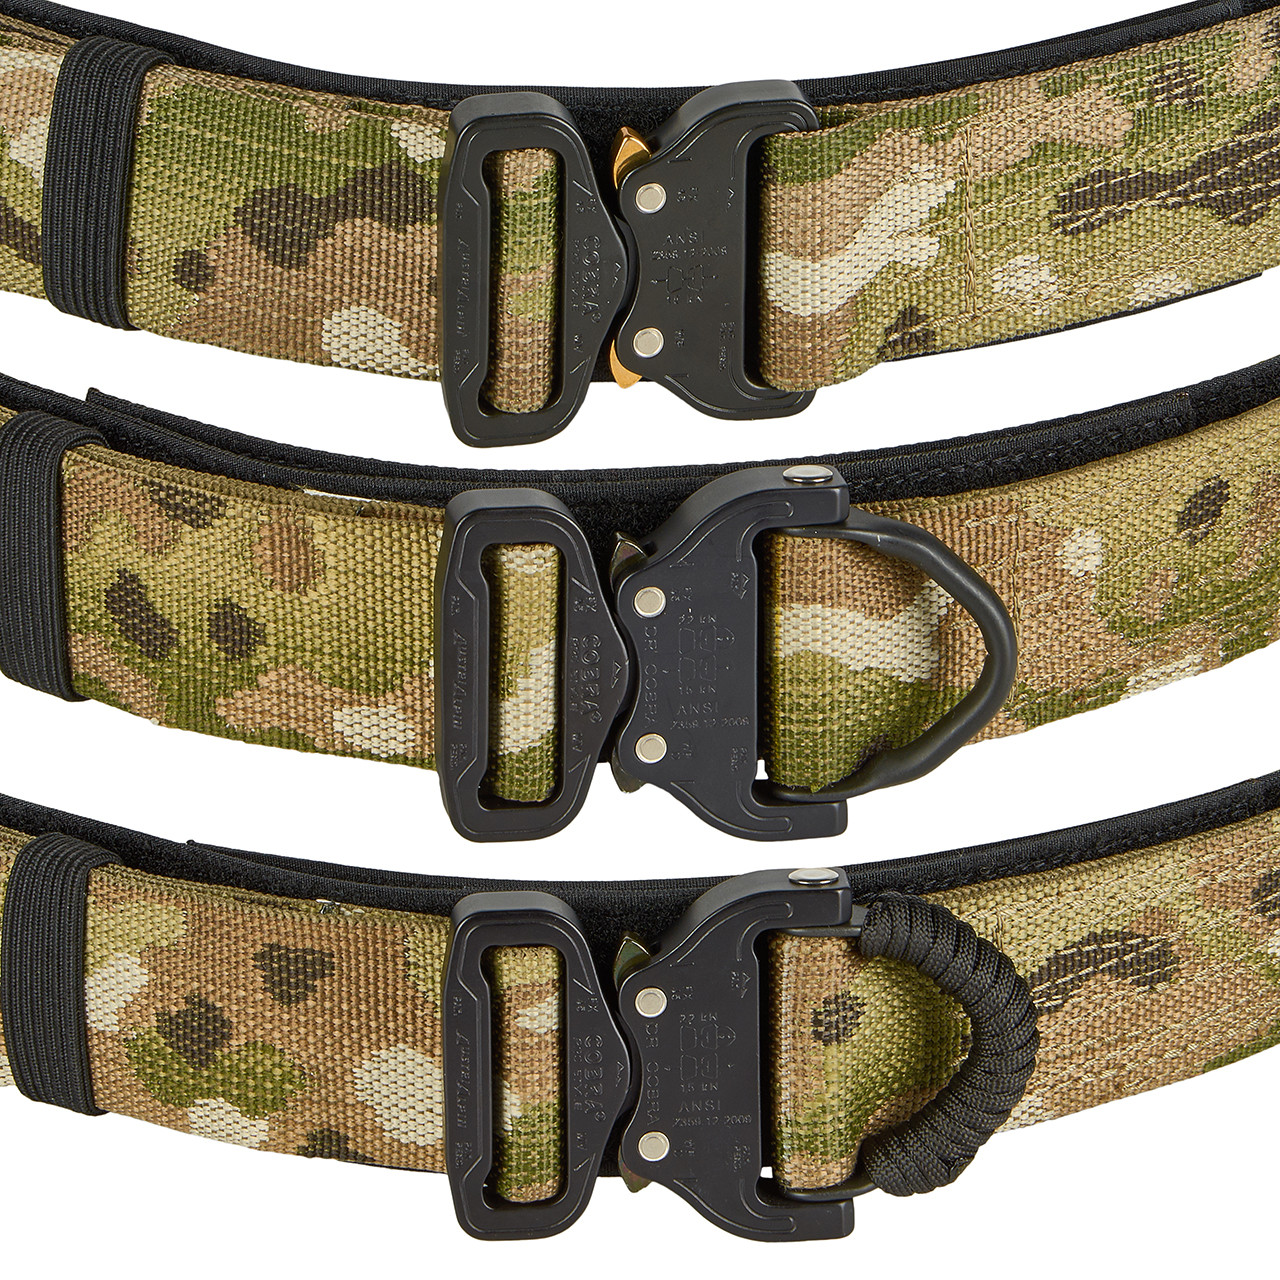 AustriAlpin Cobra buckle. Tactical belt